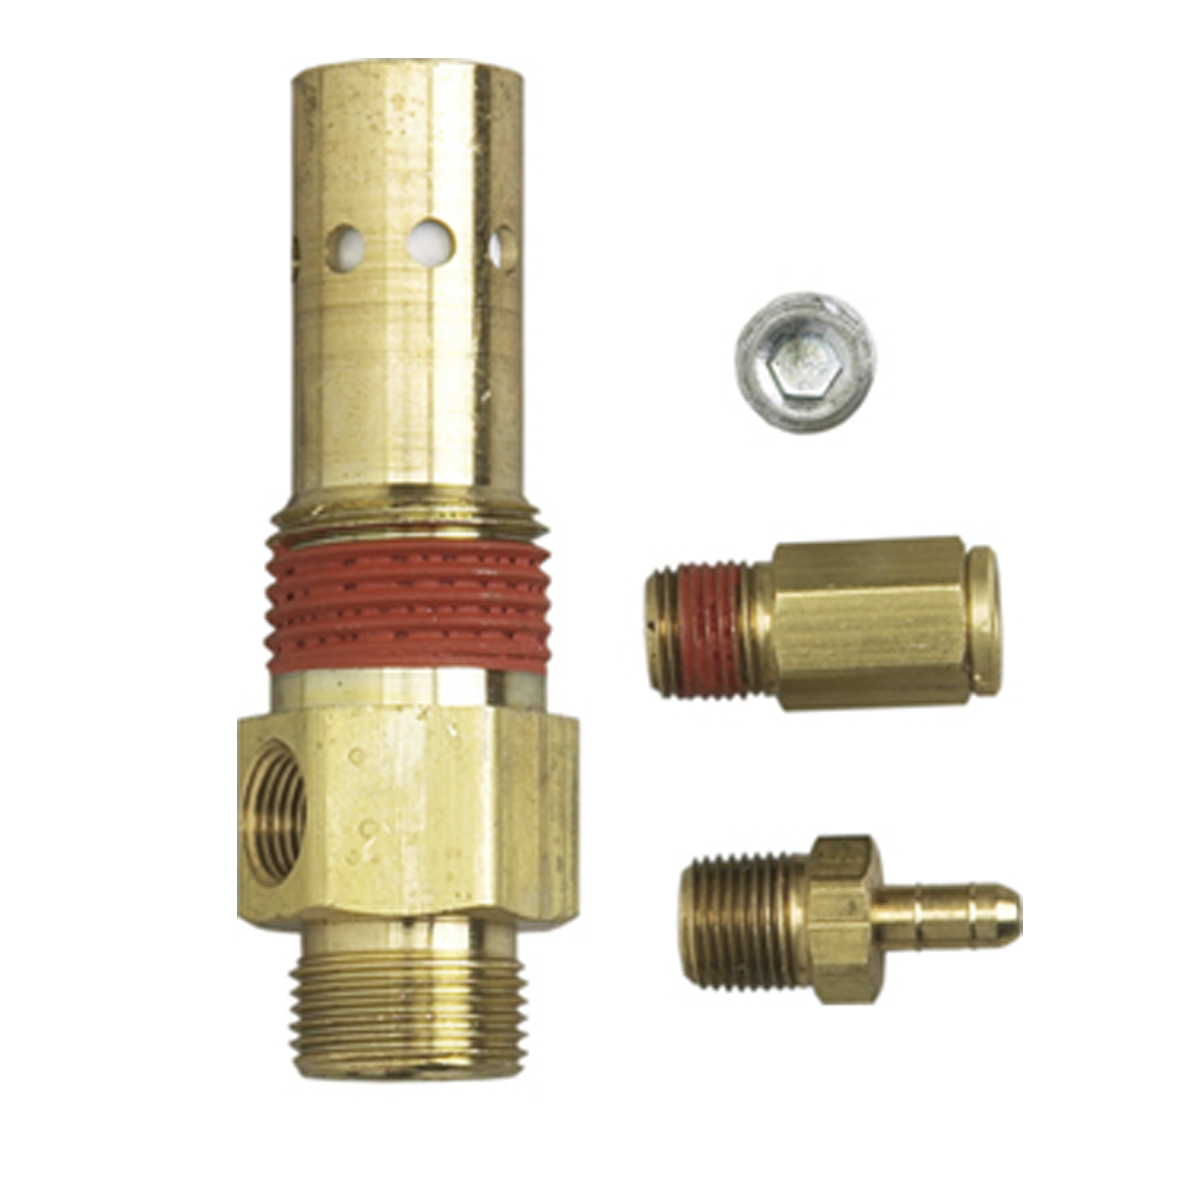 Campbell Hausfeld Check Valve 1 (GR001600AJ) product image center